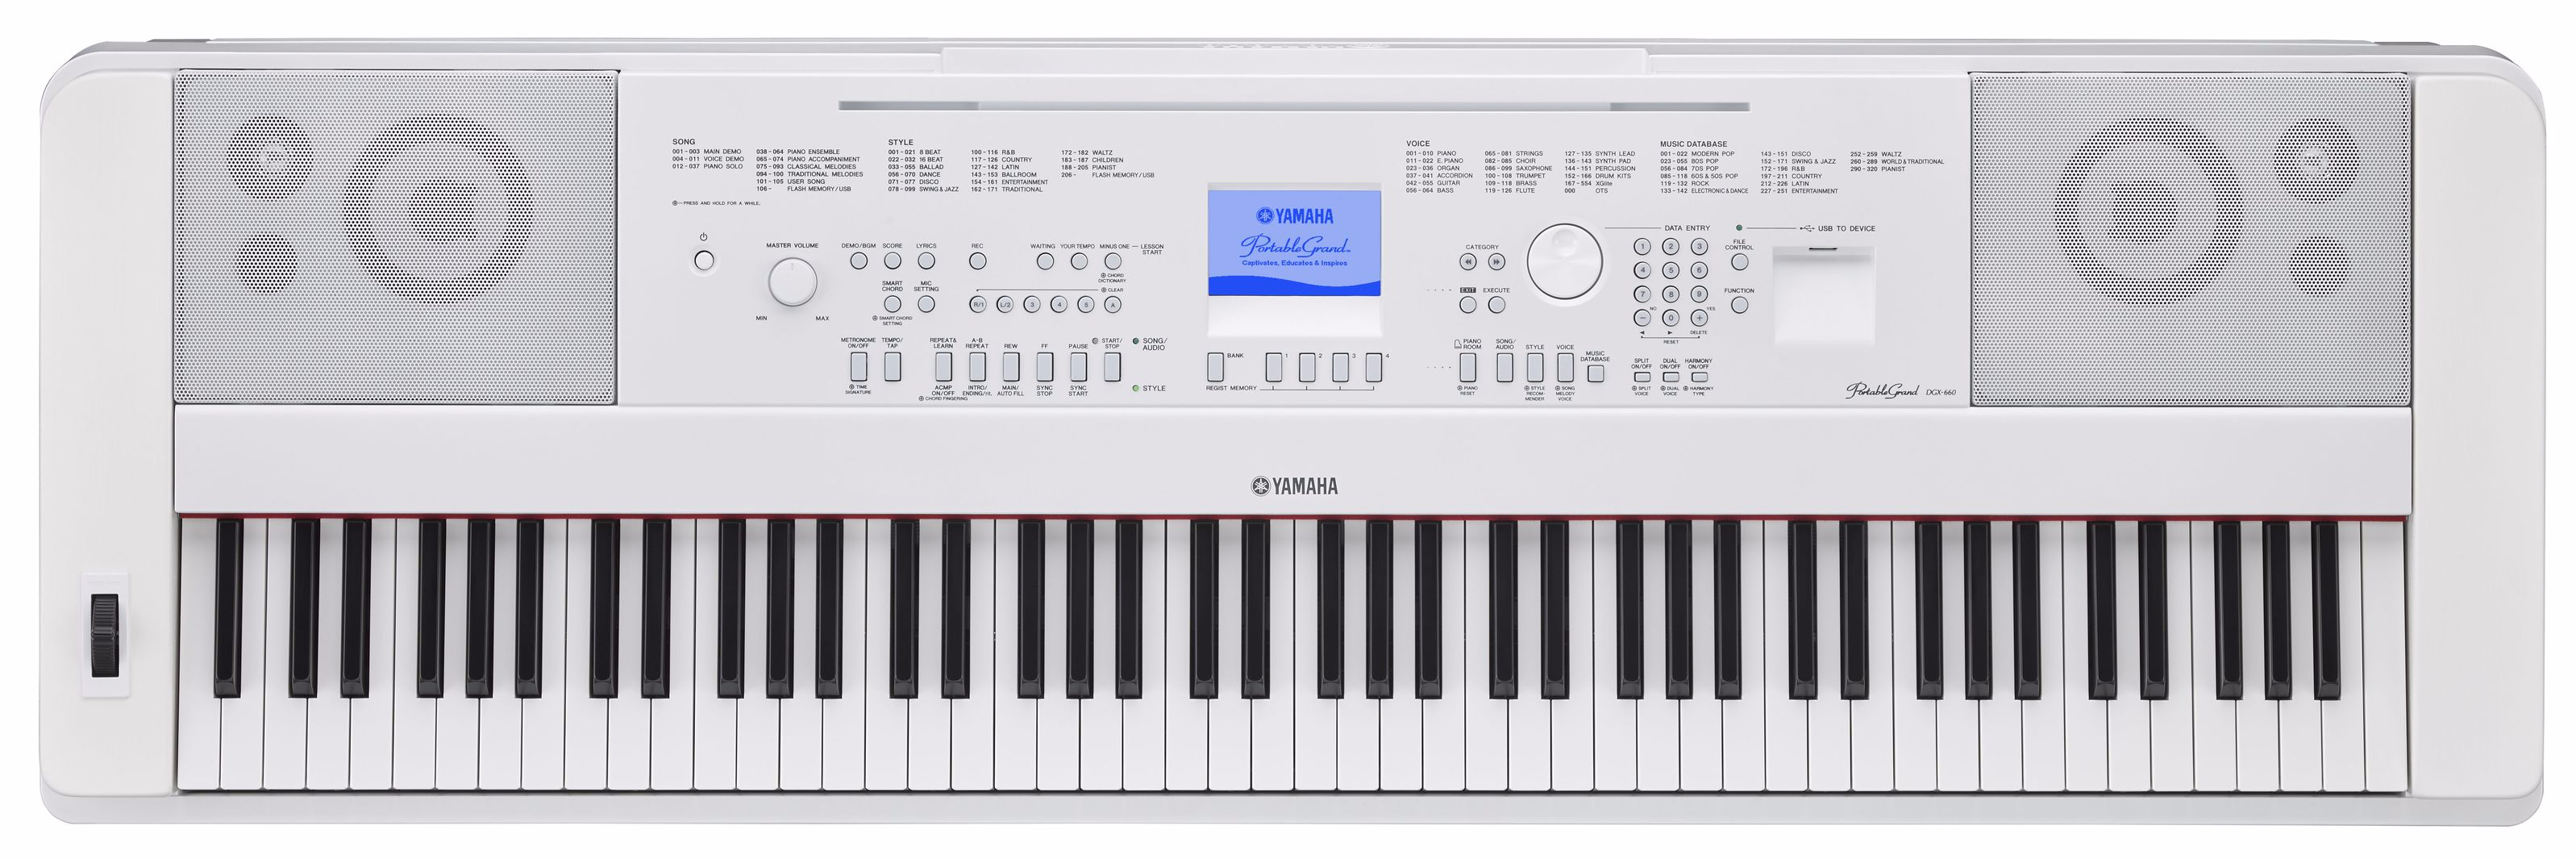 Yamaha DGX-660 WH Digital Piano